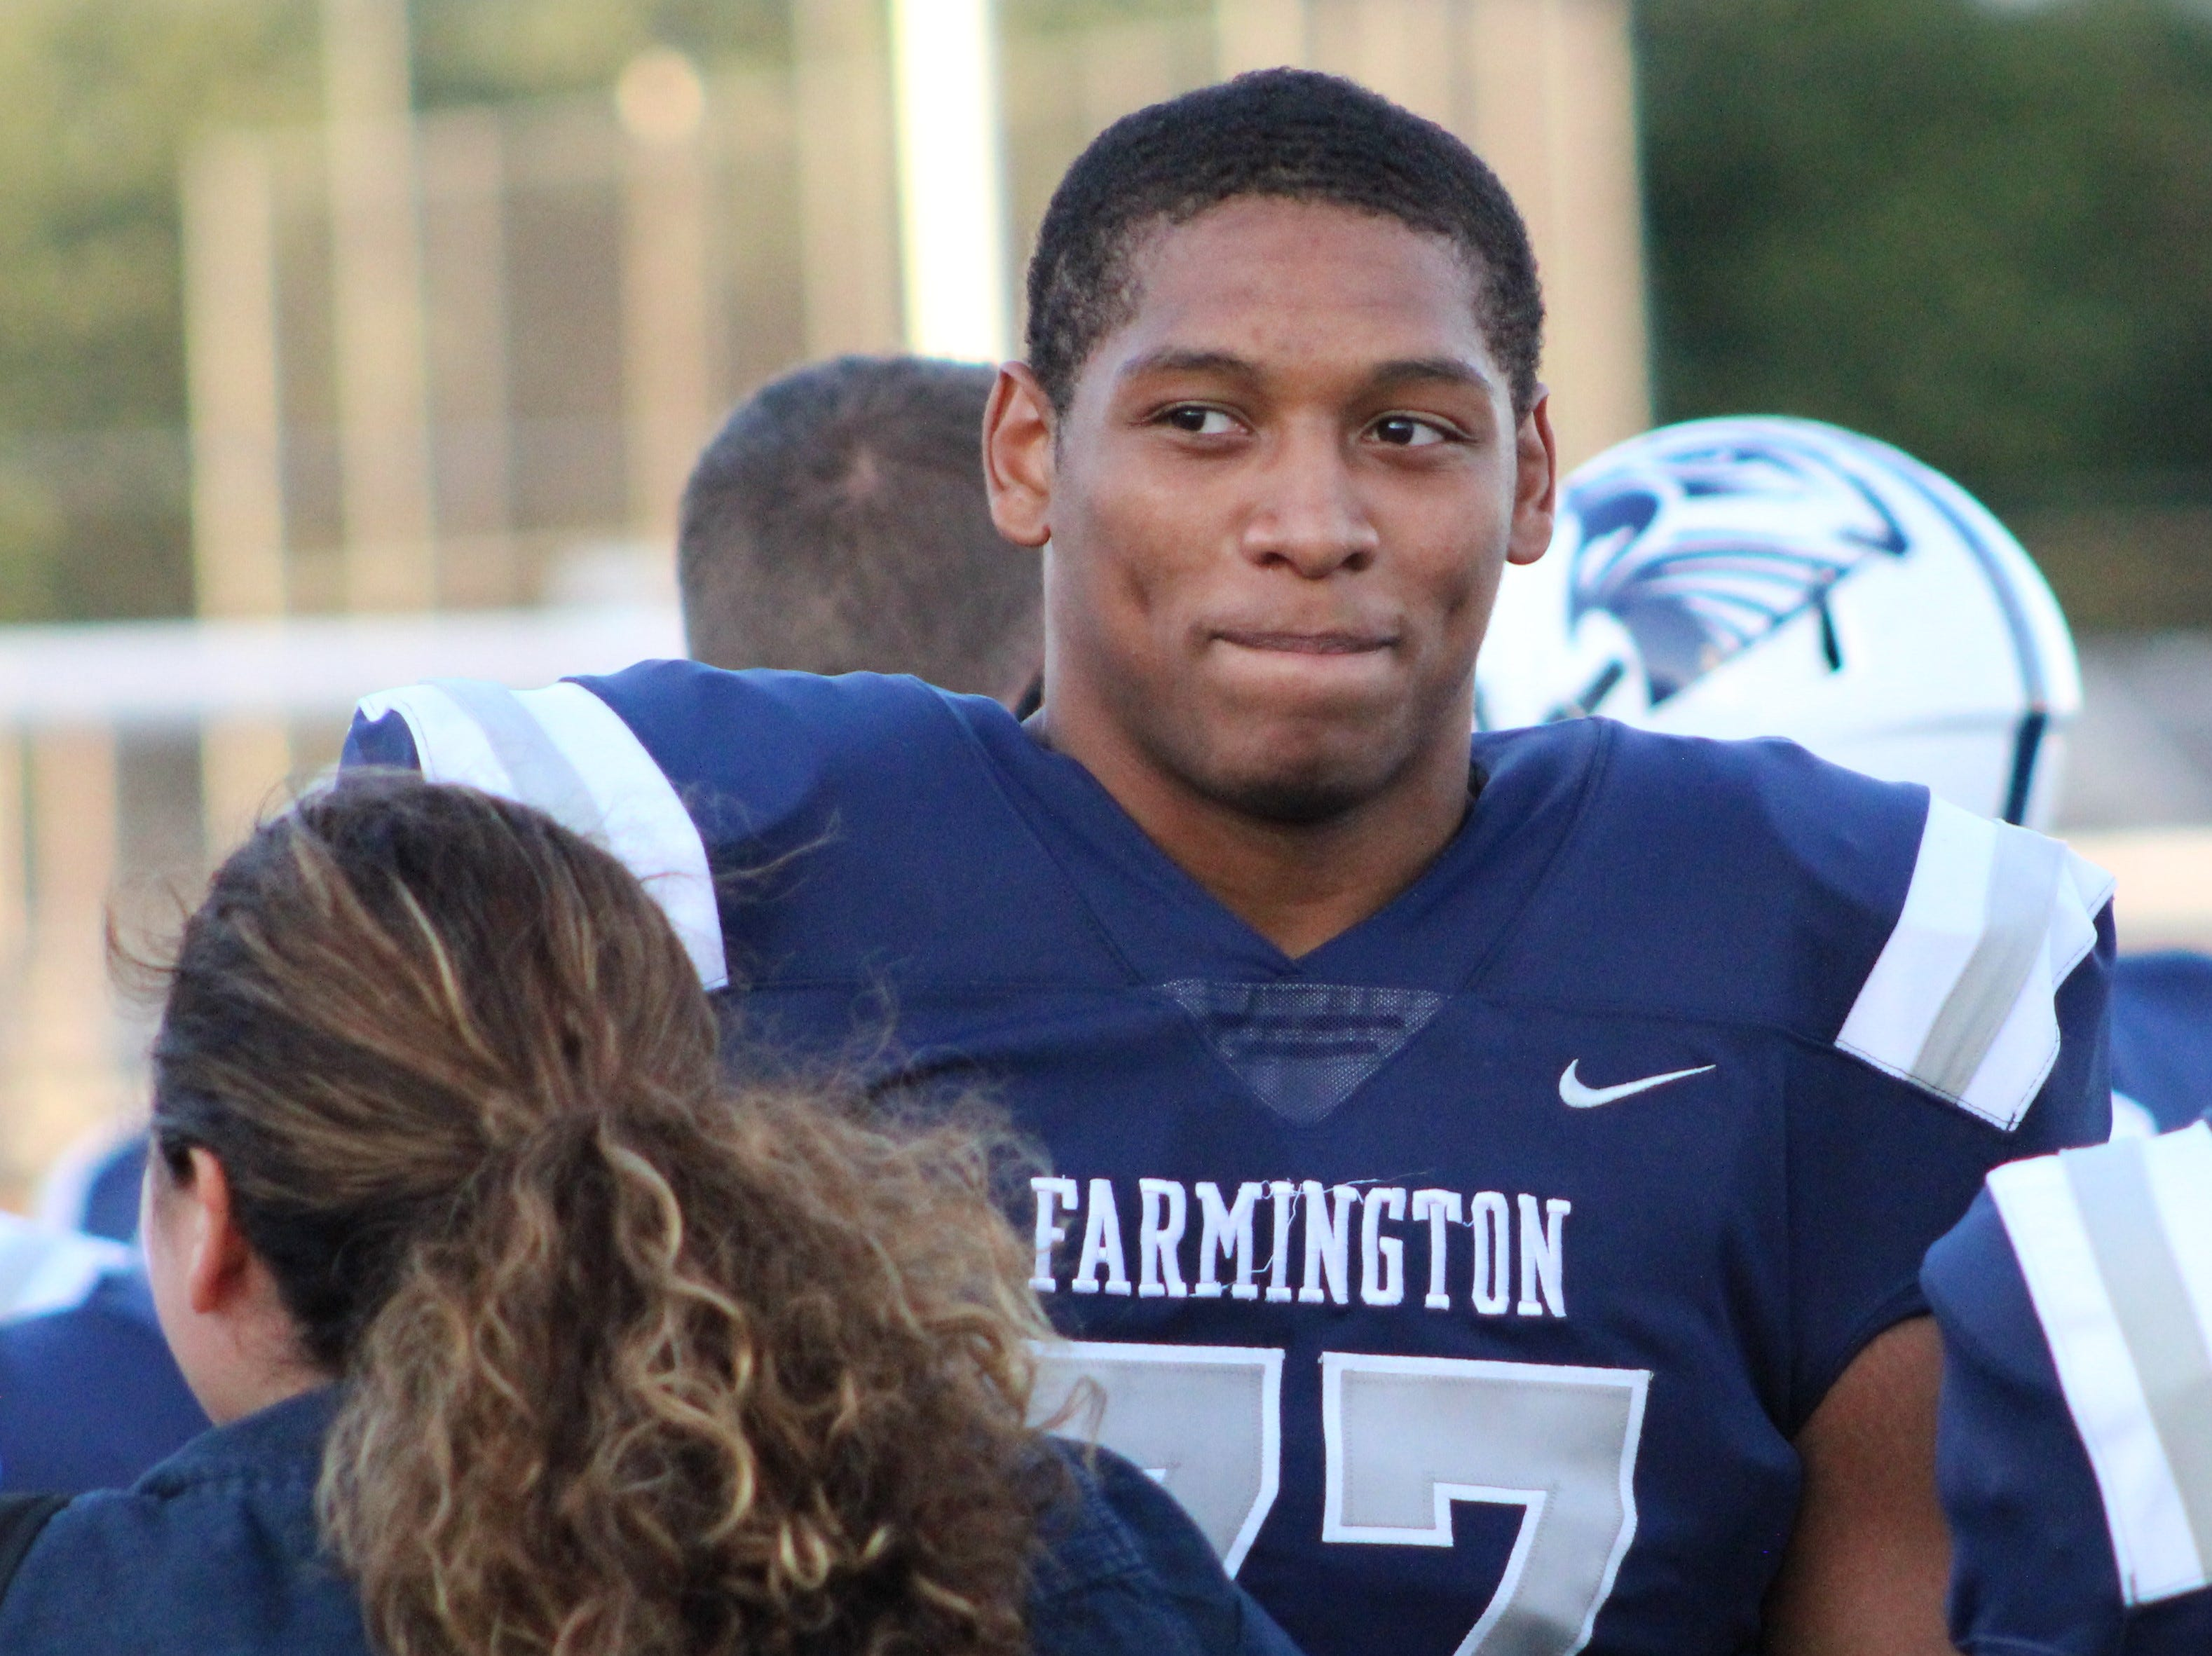 Out but not down, injured Donovan King finds ways to motivate his Farmington teammates